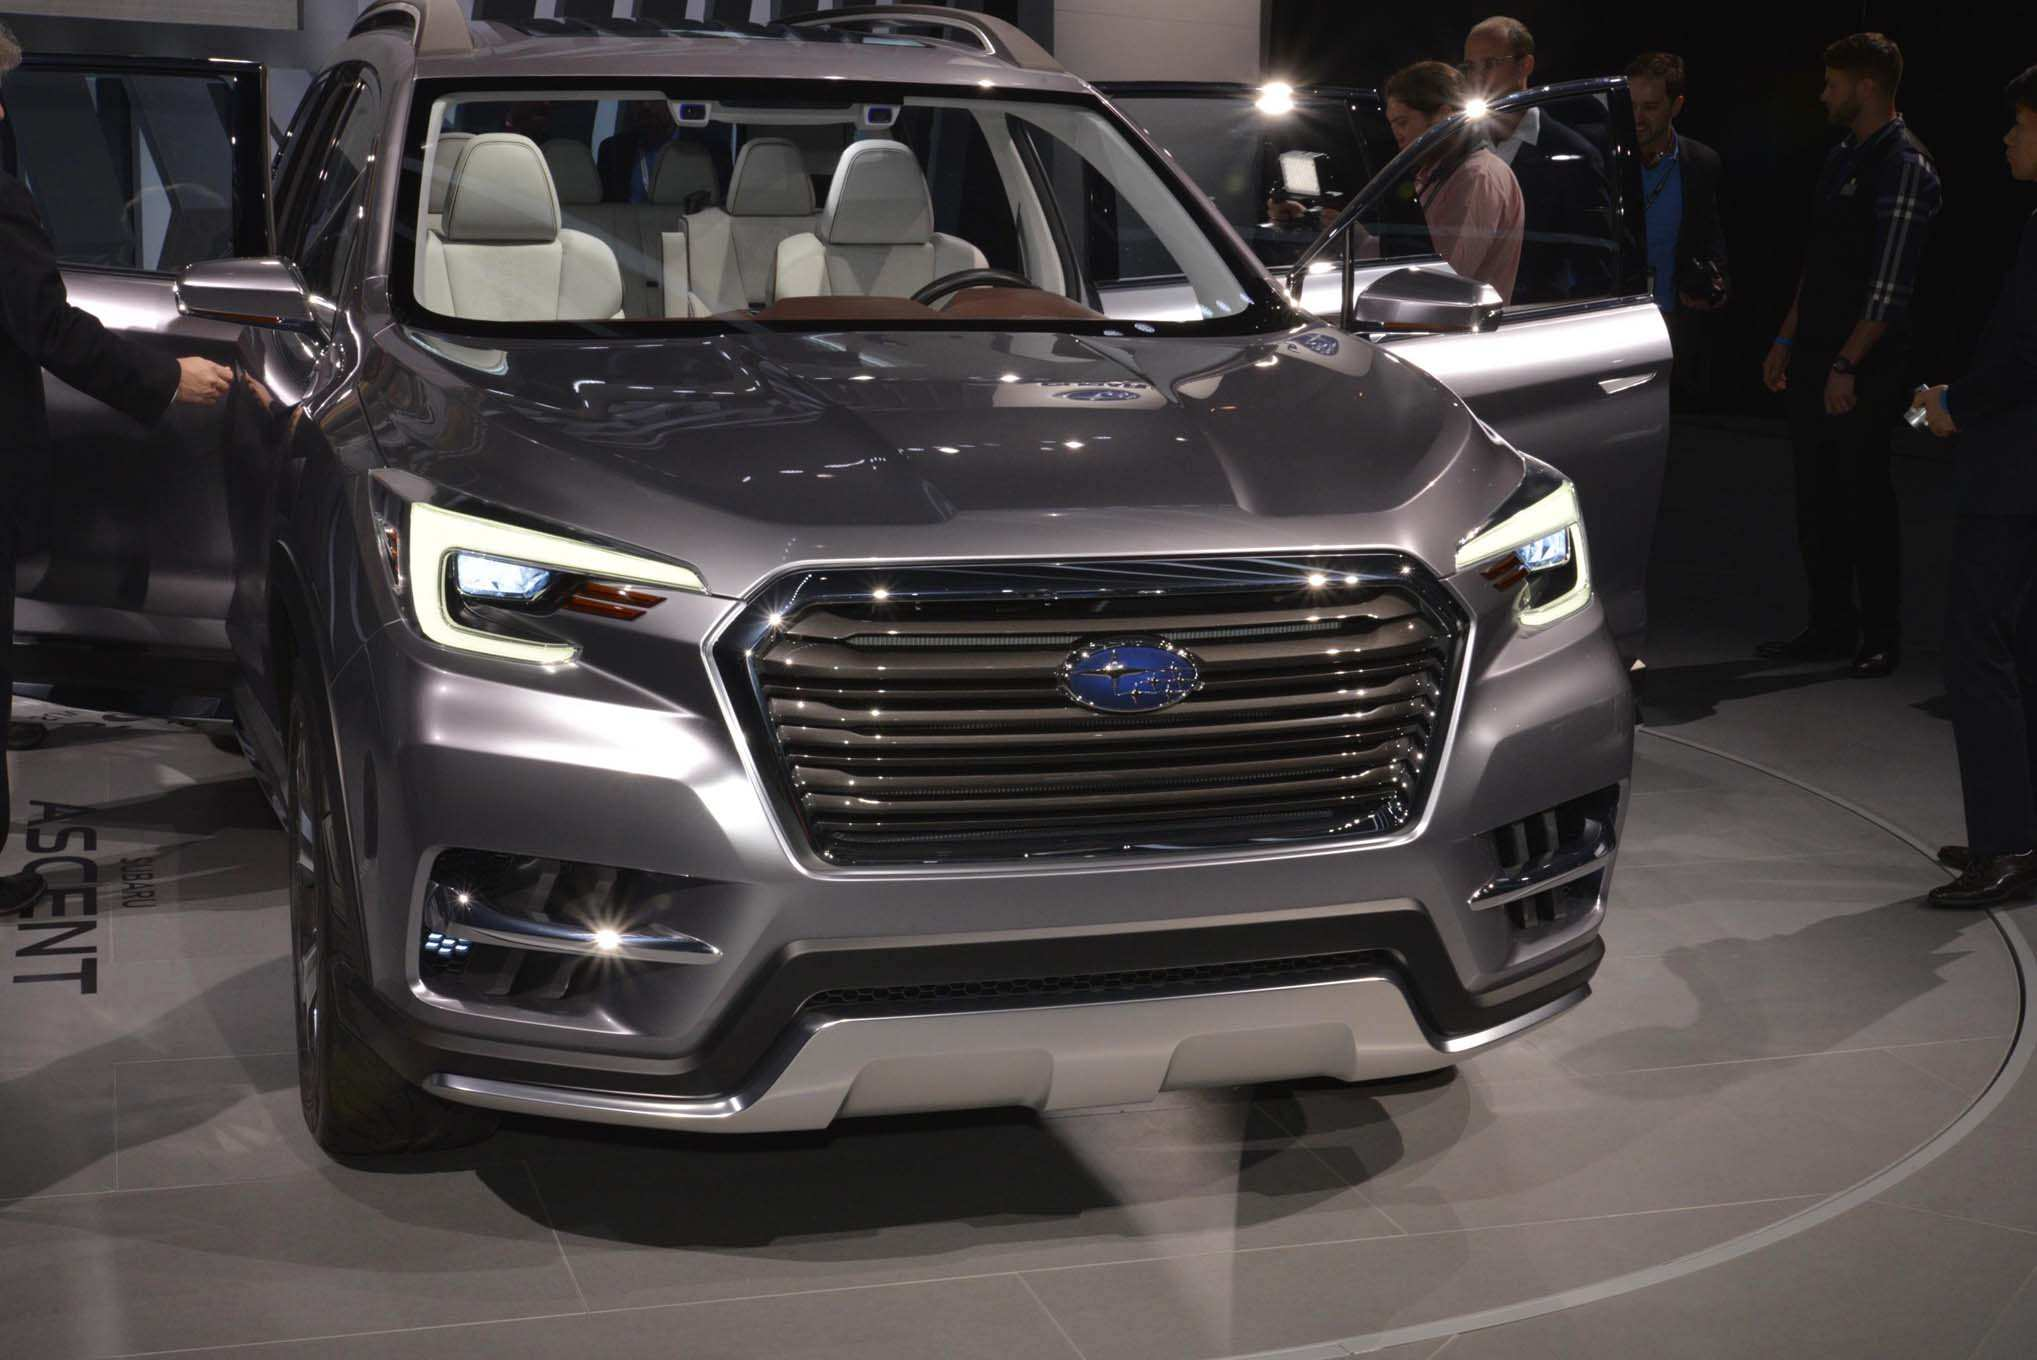 56 Gallery of New Subaru Unveils 2019 Ascent Price And Release Date Performance for New Subaru Unveils 2019 Ascent Price And Release Date